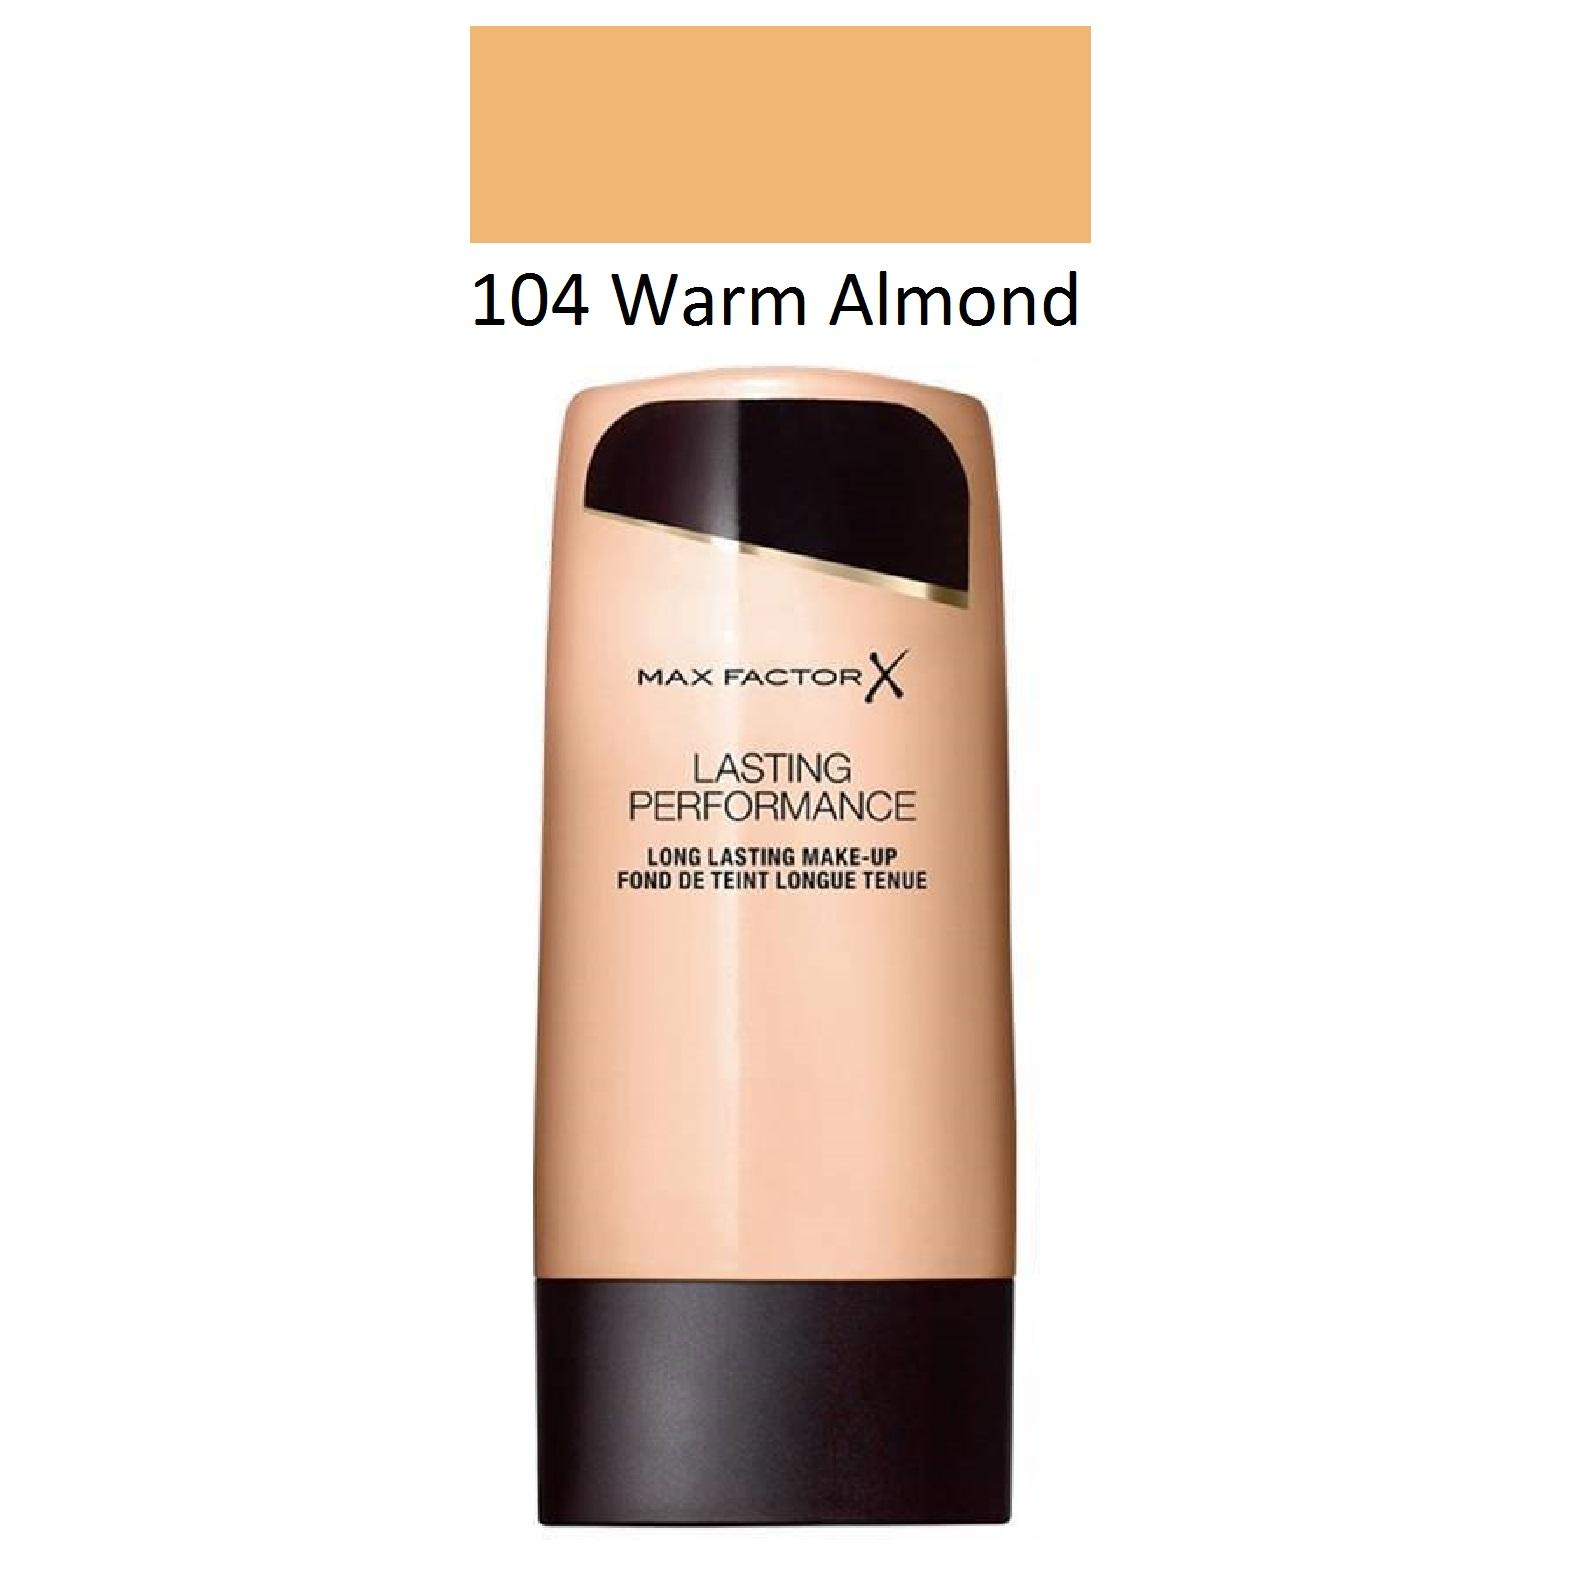 Max Factor Lasting Performance Foundation 104 Warm Almond